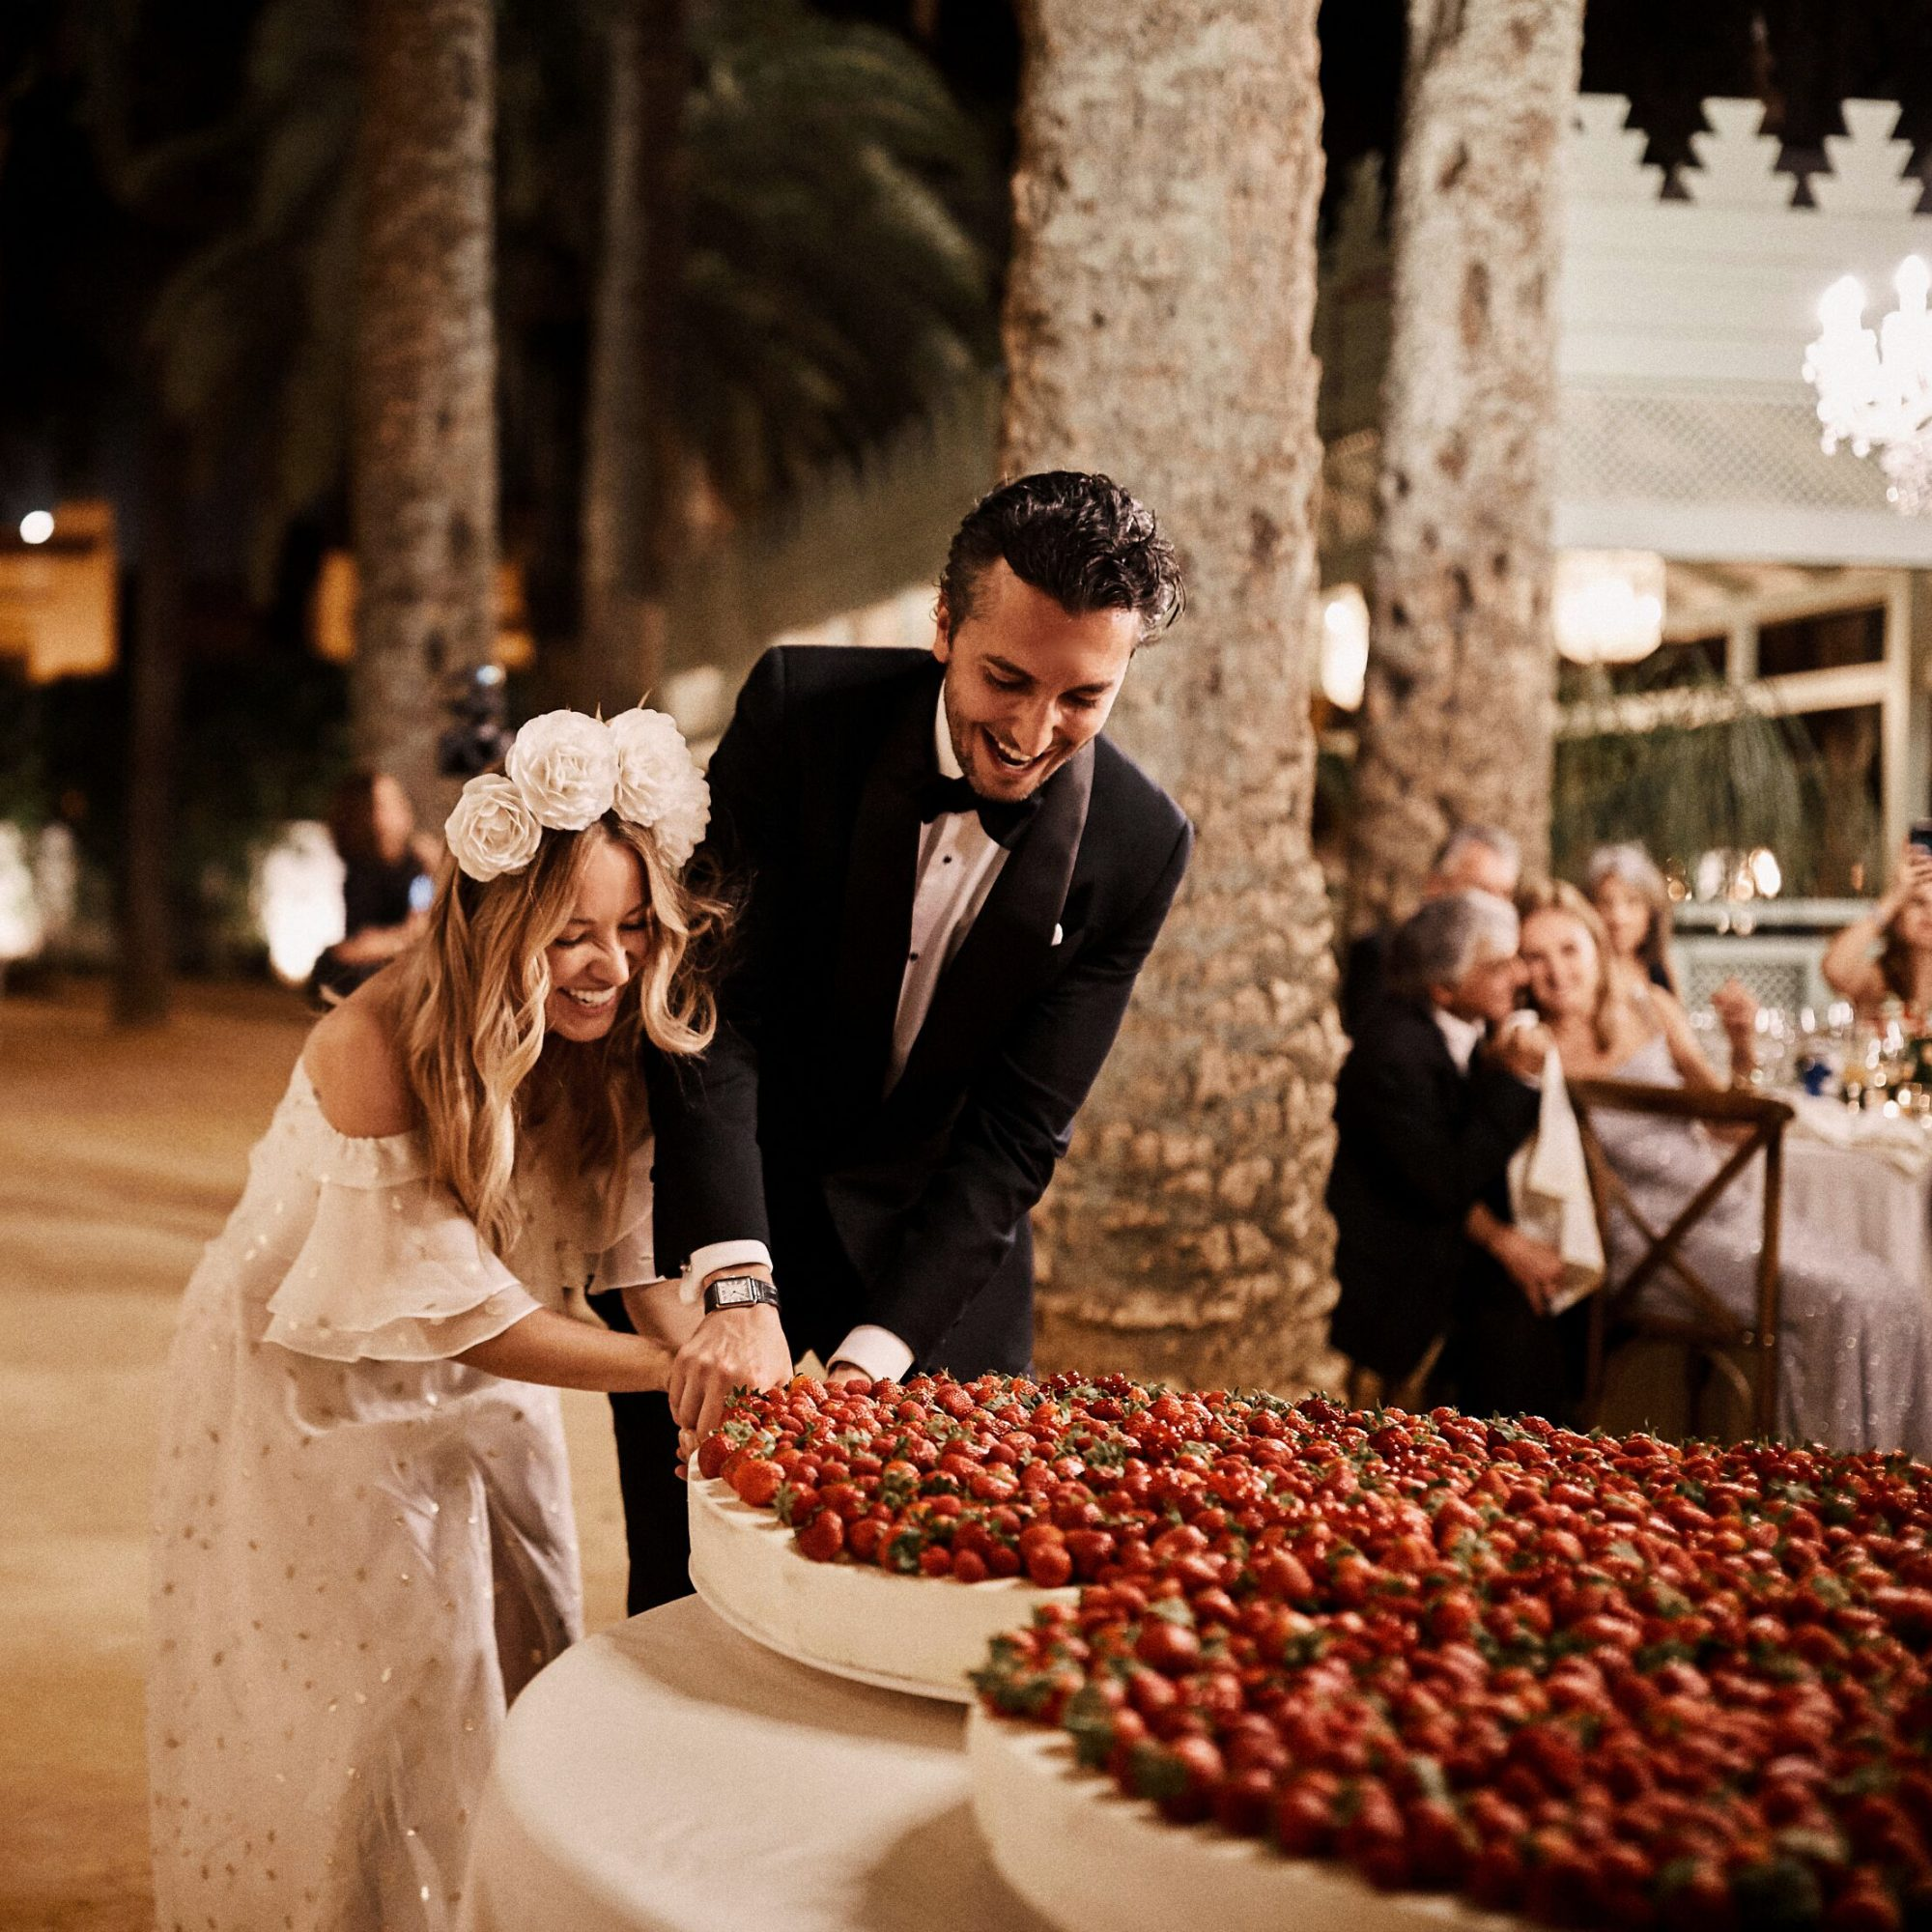 karolina sorab wedding bride groom cutting cake with strawberries